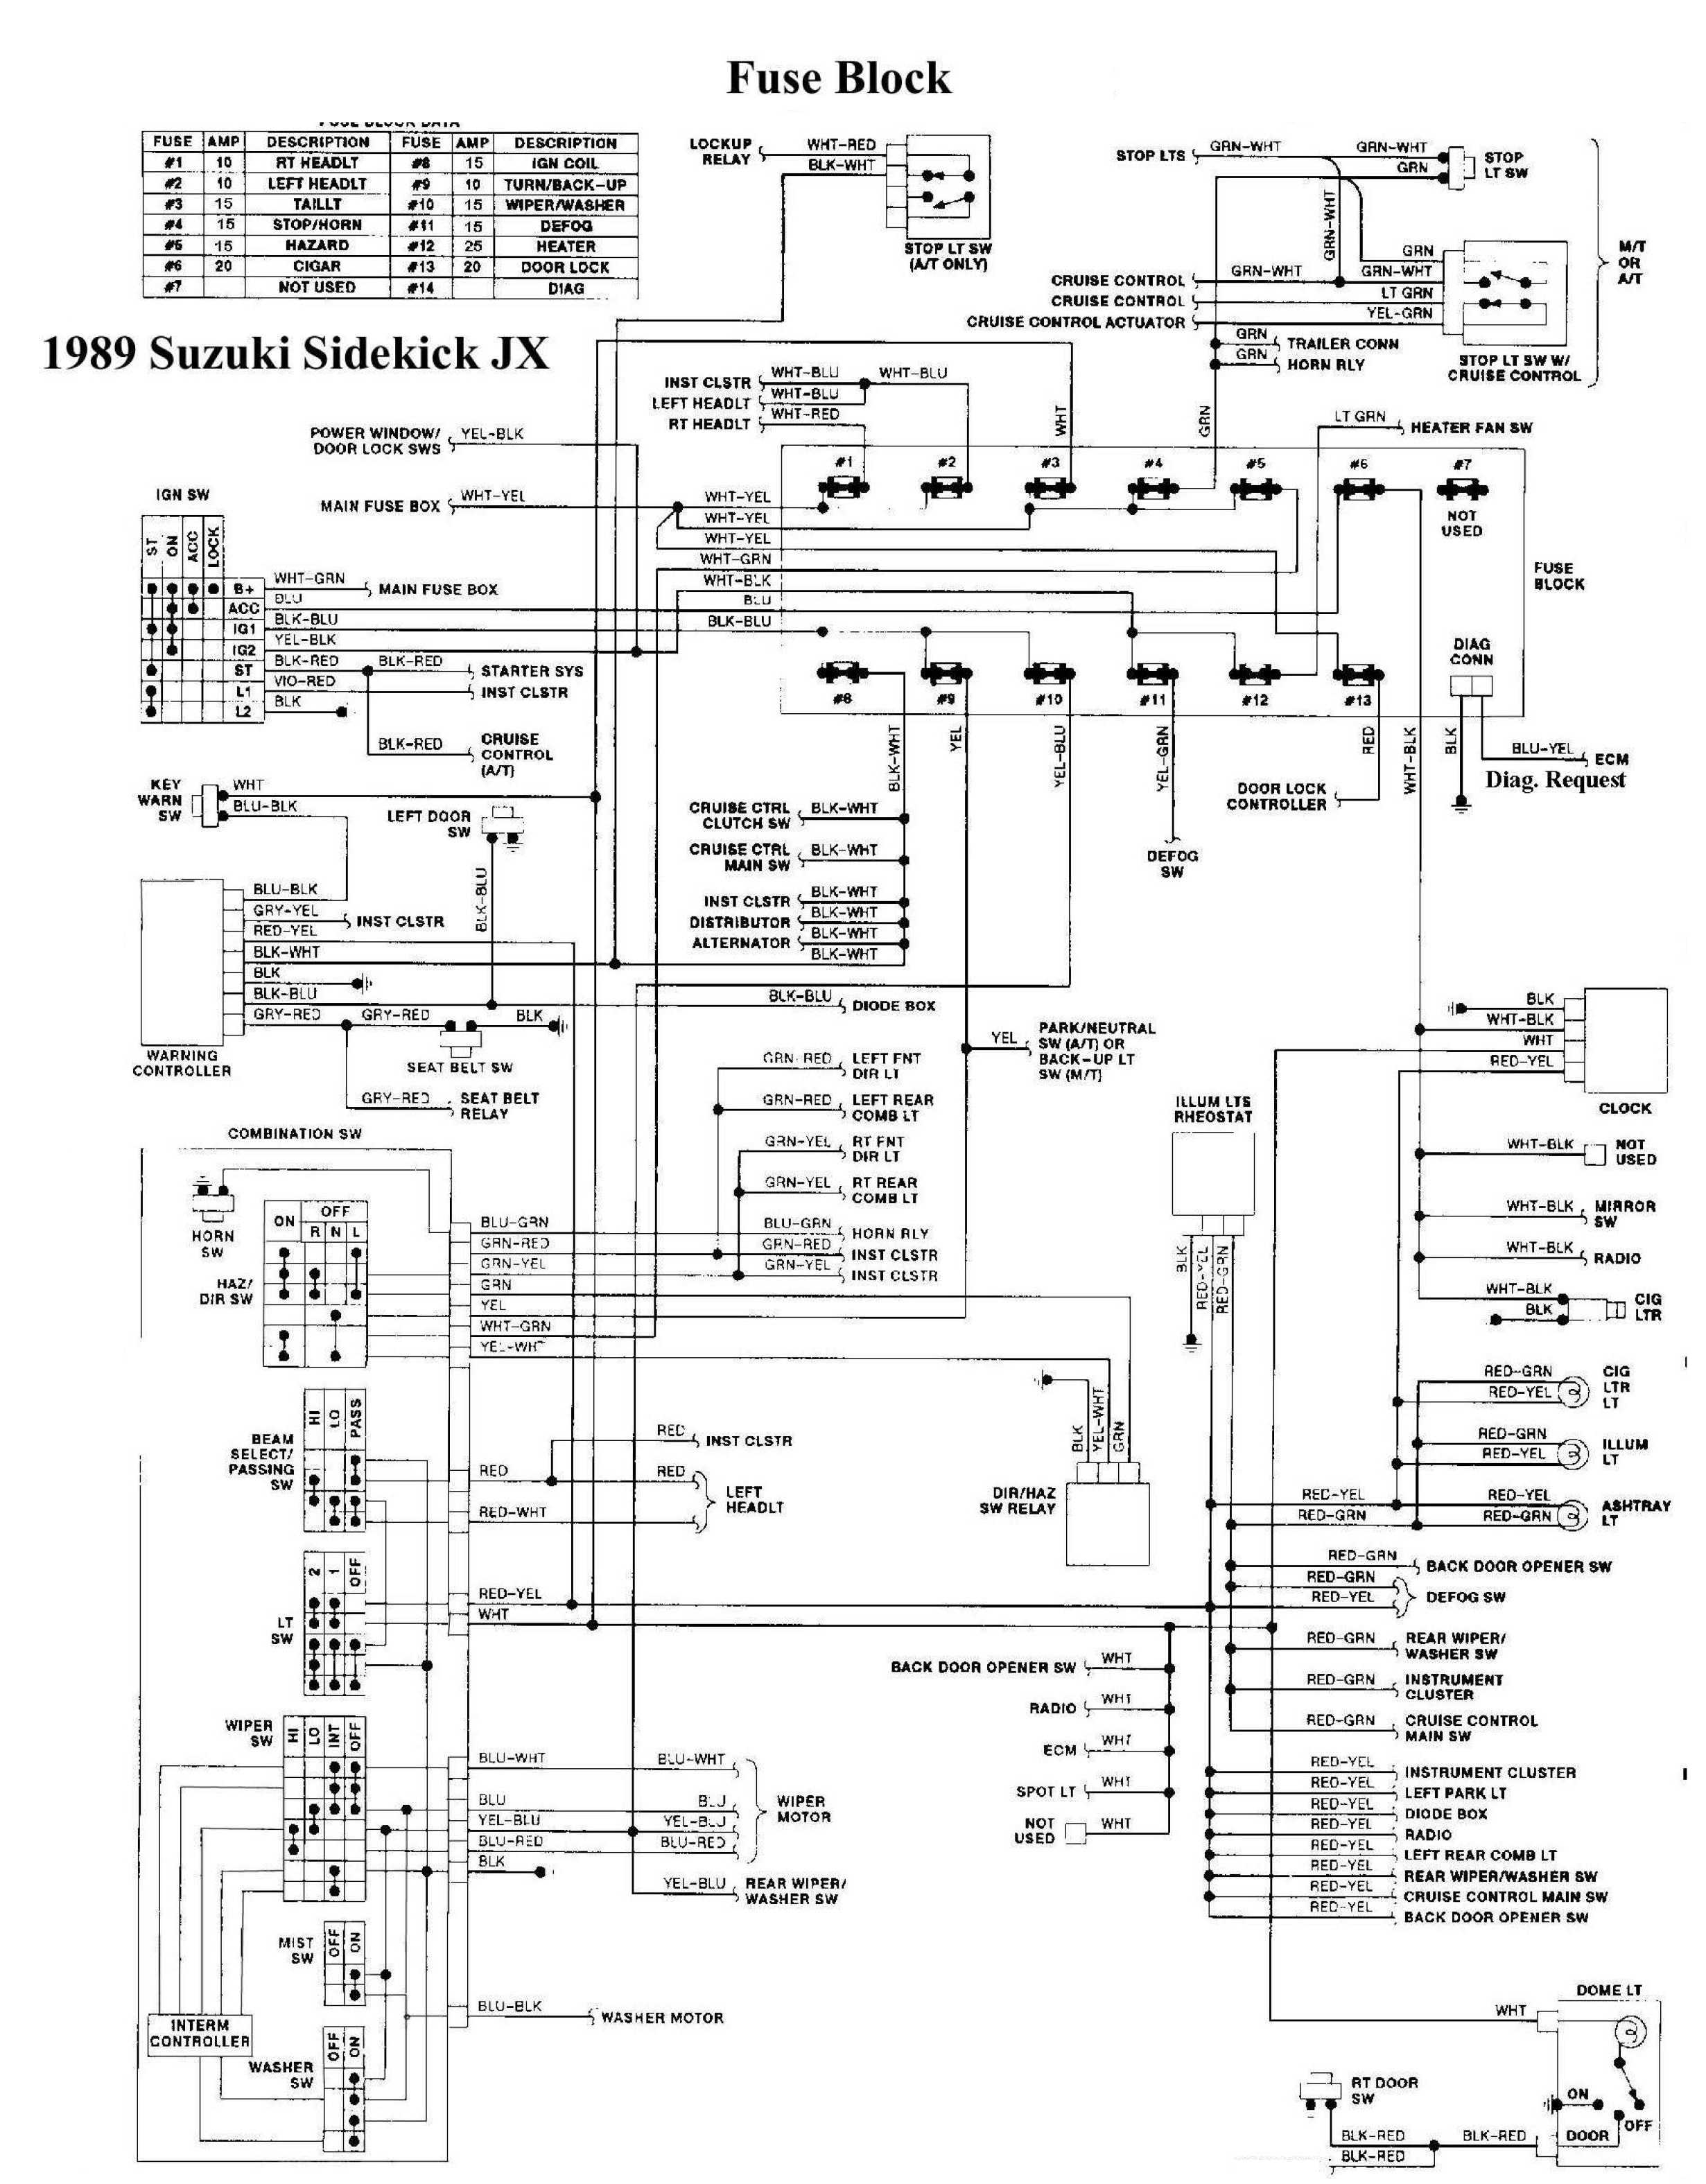 Suzuki Apv Fuse Box | Wiring Diagram on gm horn diagram, gm steering column diagram, ecu block diagram, gm 1228747 computer diagram, gm transmission diagram, toyota 4runner diagram, ecu fuse diagram, ecu circuits, ecu schematic diagram, gm power steering pump diagram, nissan sentra electrical diagram, exhaust diagram,